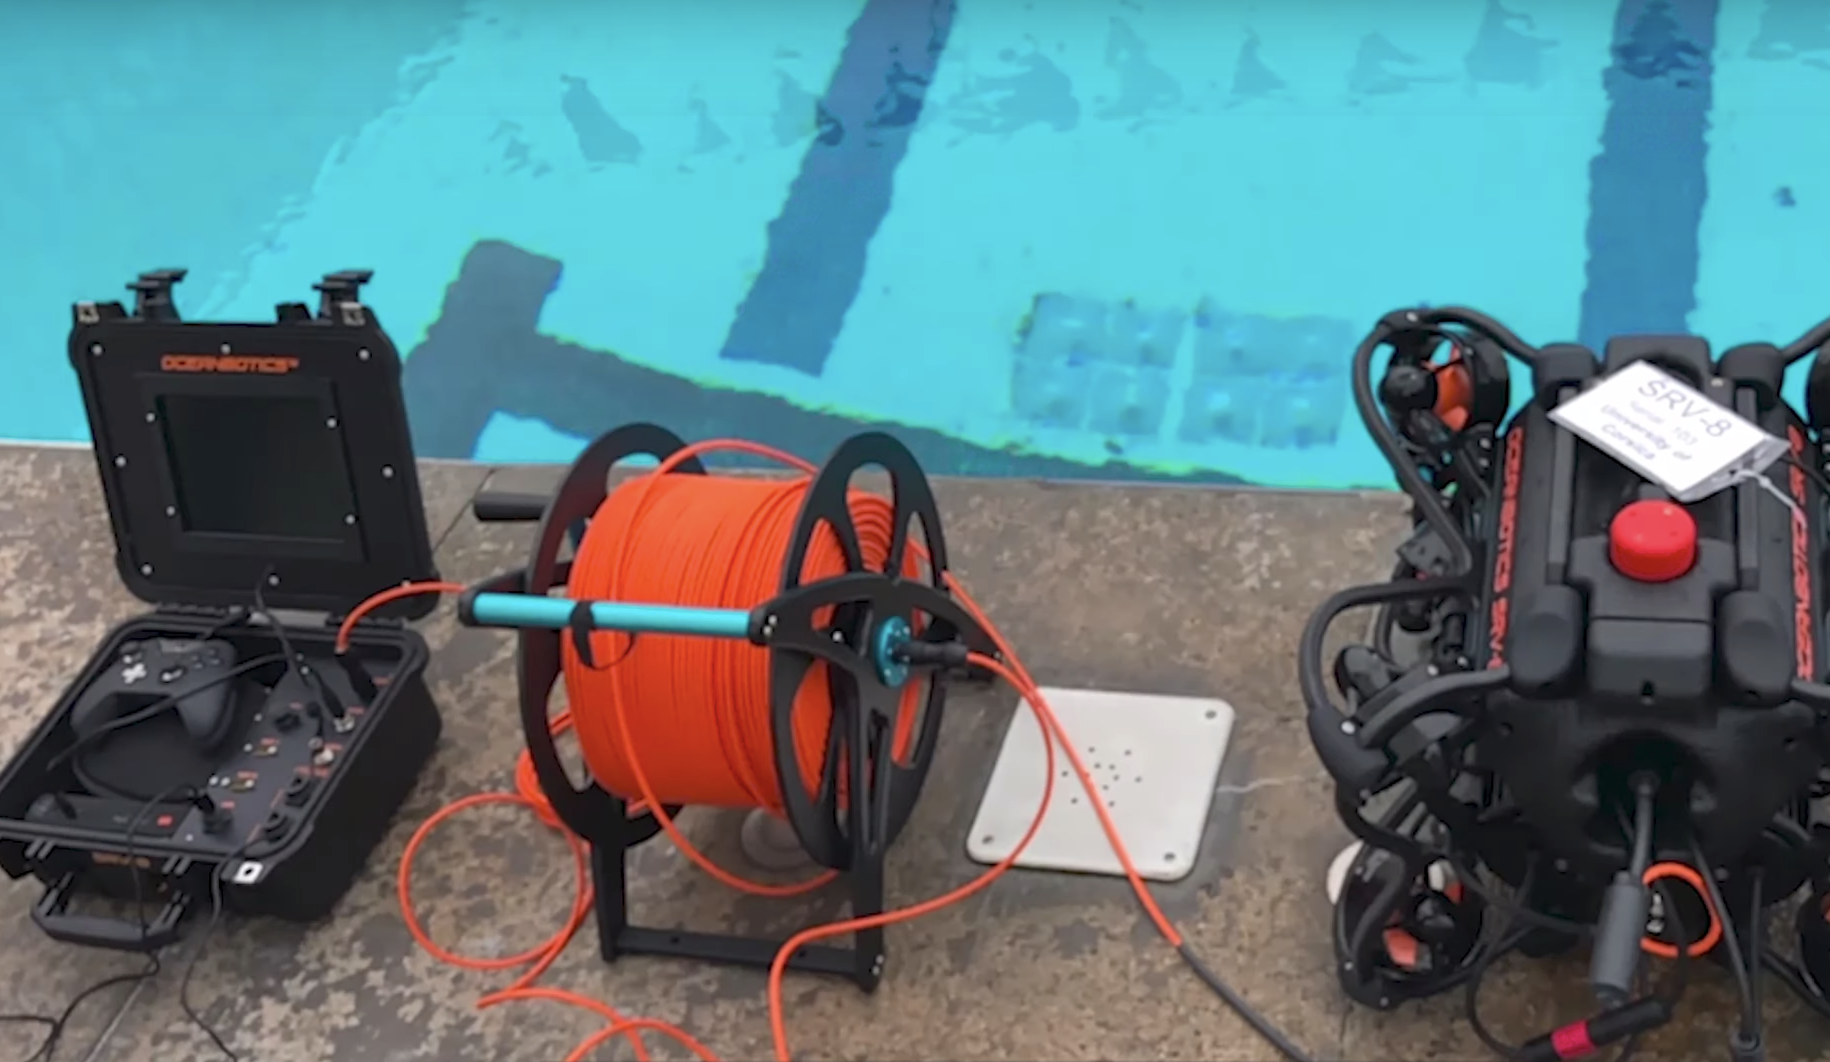 SRV-8 remotely operated underwater vehicle system setup